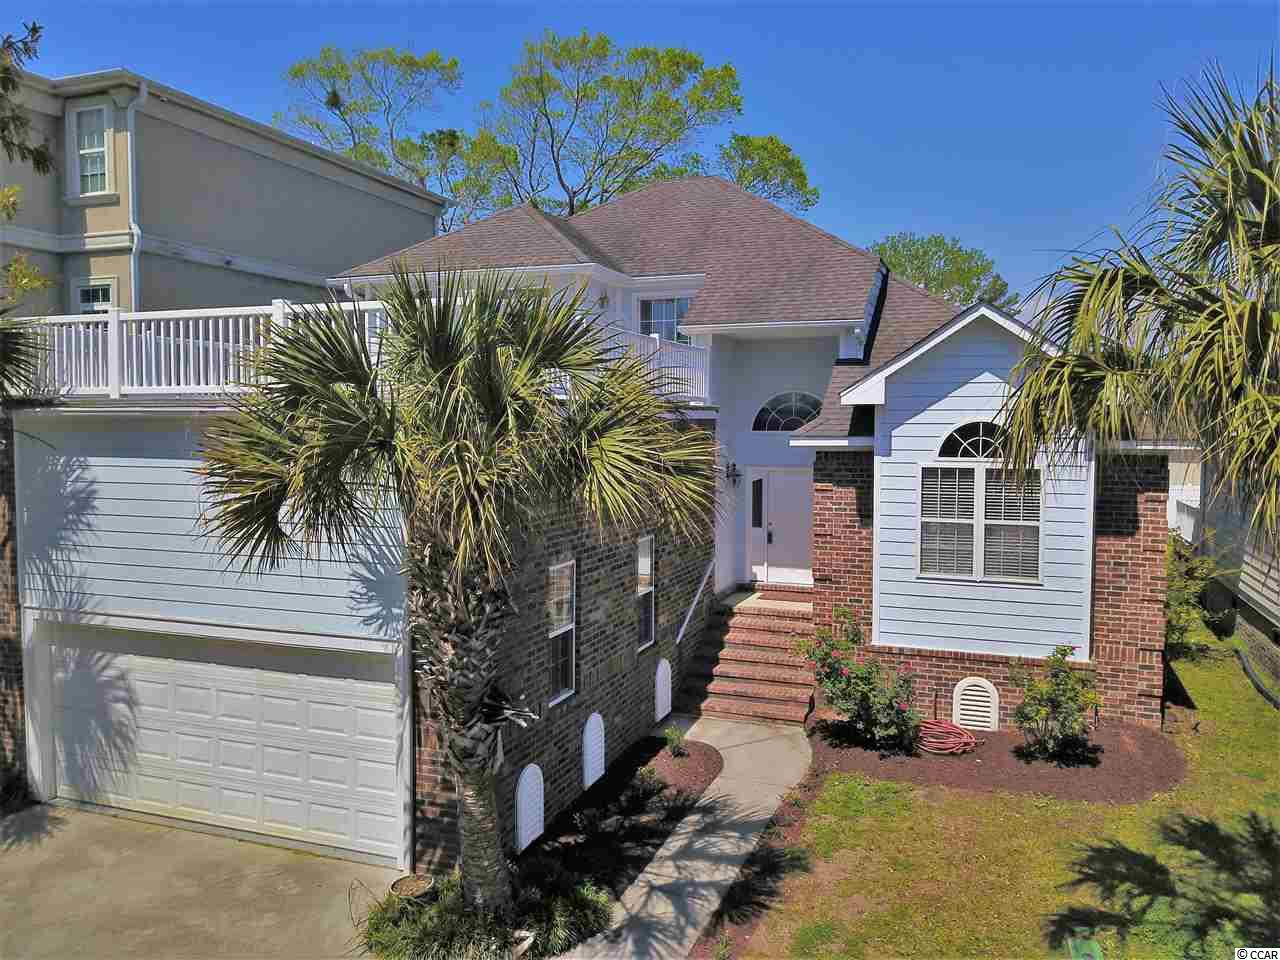 PRIME LOCATION with deep water access, adjacent to the Intracoastal Waterway!  Freshly painted last year as well as new carpet and landscaping!  Start living the waterway lifestyle and keep your boat in your backyard.  Plantation Harbour is a collection of fine homes located in Little River and just minutes from Cherry Grove Beach.  This home features a spacious floor plan with two master bedrooms and an upstairs loft/flex space.   Blonde maple cabinetry can be found in the kitchen with neutral tile flooring, solid surface counter tops, and stainless appliances.  The master baths are equipped with large garden tubs and walk in showers.  Vaulted ceilings and large windows allow plenty of natural light into this beautiful home through the grand living room.  Laminate wood plank flooring in a dark cherry finish complete the living area and main floor.  Want to enjoy the water views...take you living space outdoors with plenty of deck space and balconies to enjoy all of the water views.  Prime location adjacent to Harbourgate Marina and just a few minutes into North Myrtle Beach.  Dedicated homeowner dock and ramp with deep water channel access make this home a desirable place for boat owners or anyone who wants to enjoy the waterway life!